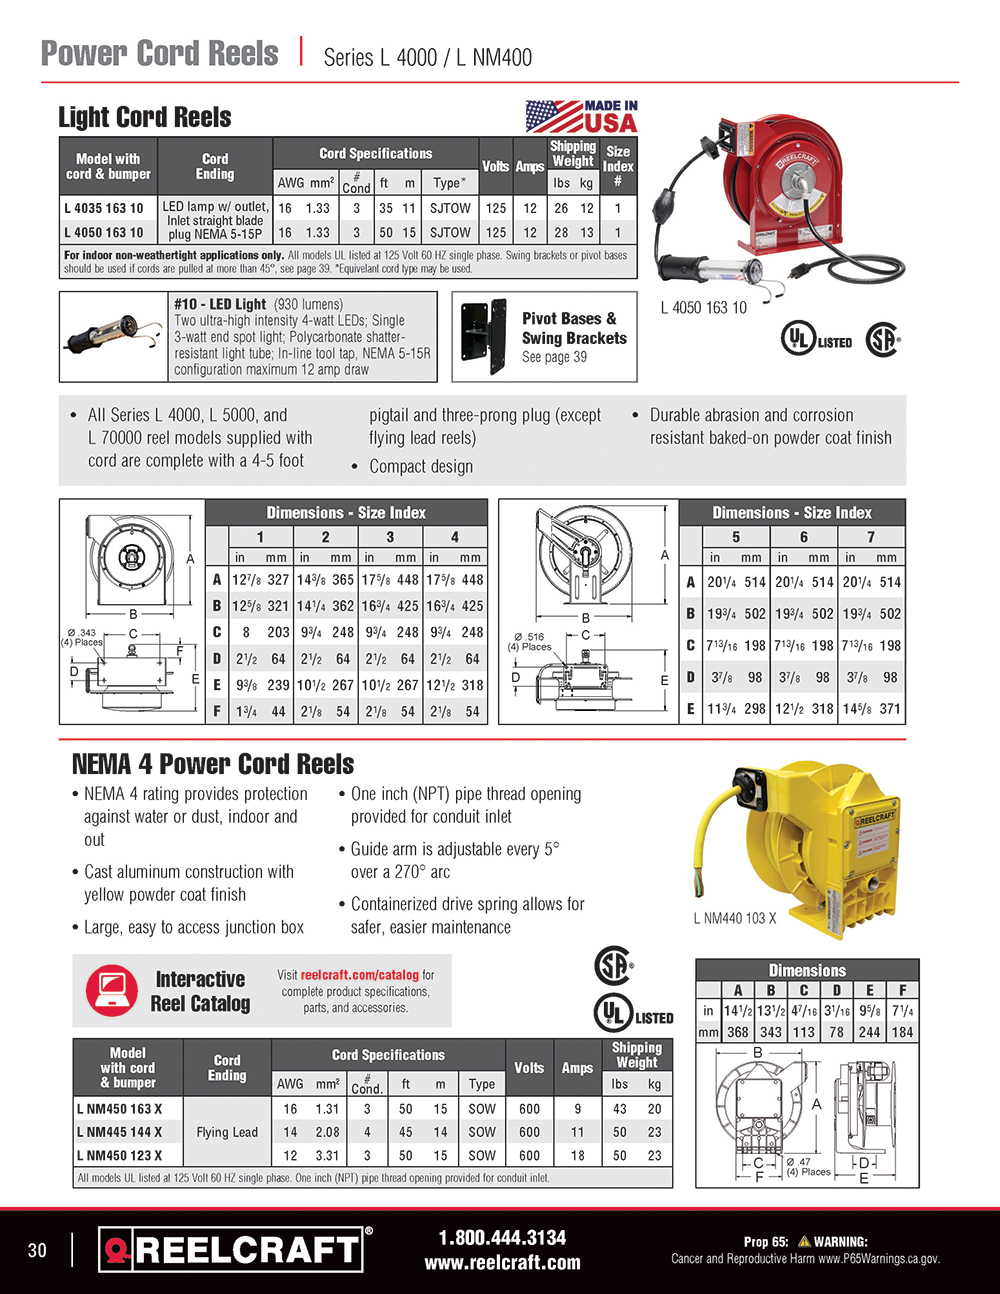 Reelcraft Catalog Page 30 -Series 2400 Hose Reels